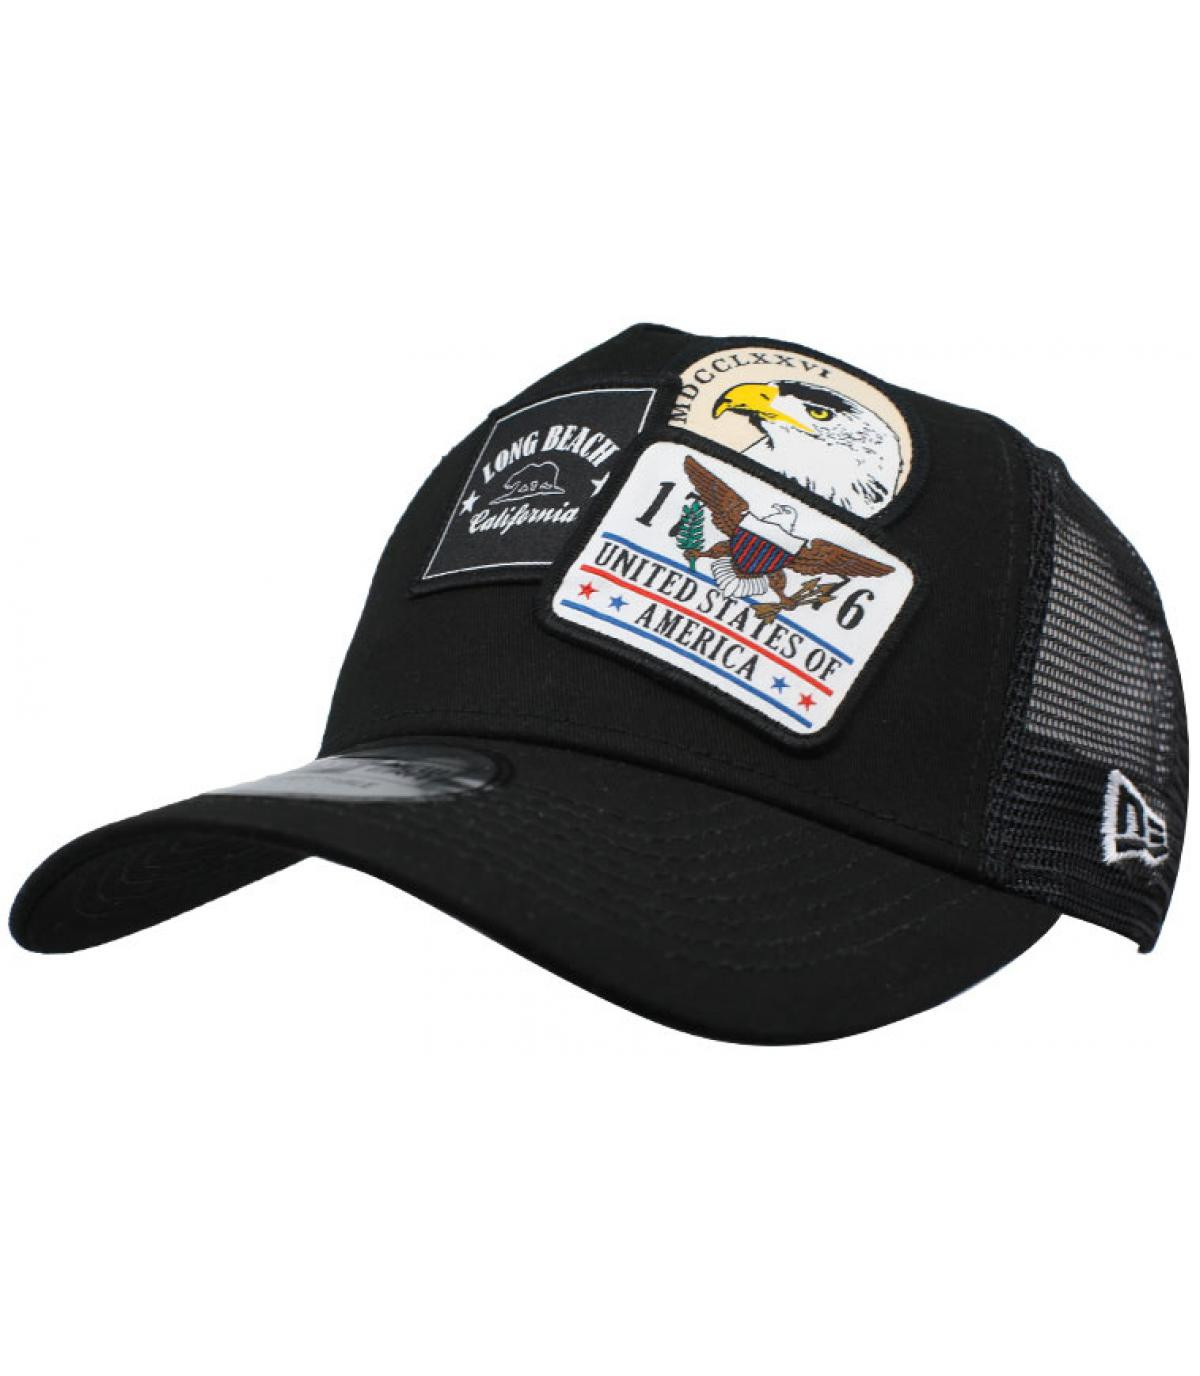 Details Trucker Overlapping patch black - afbeeling 2